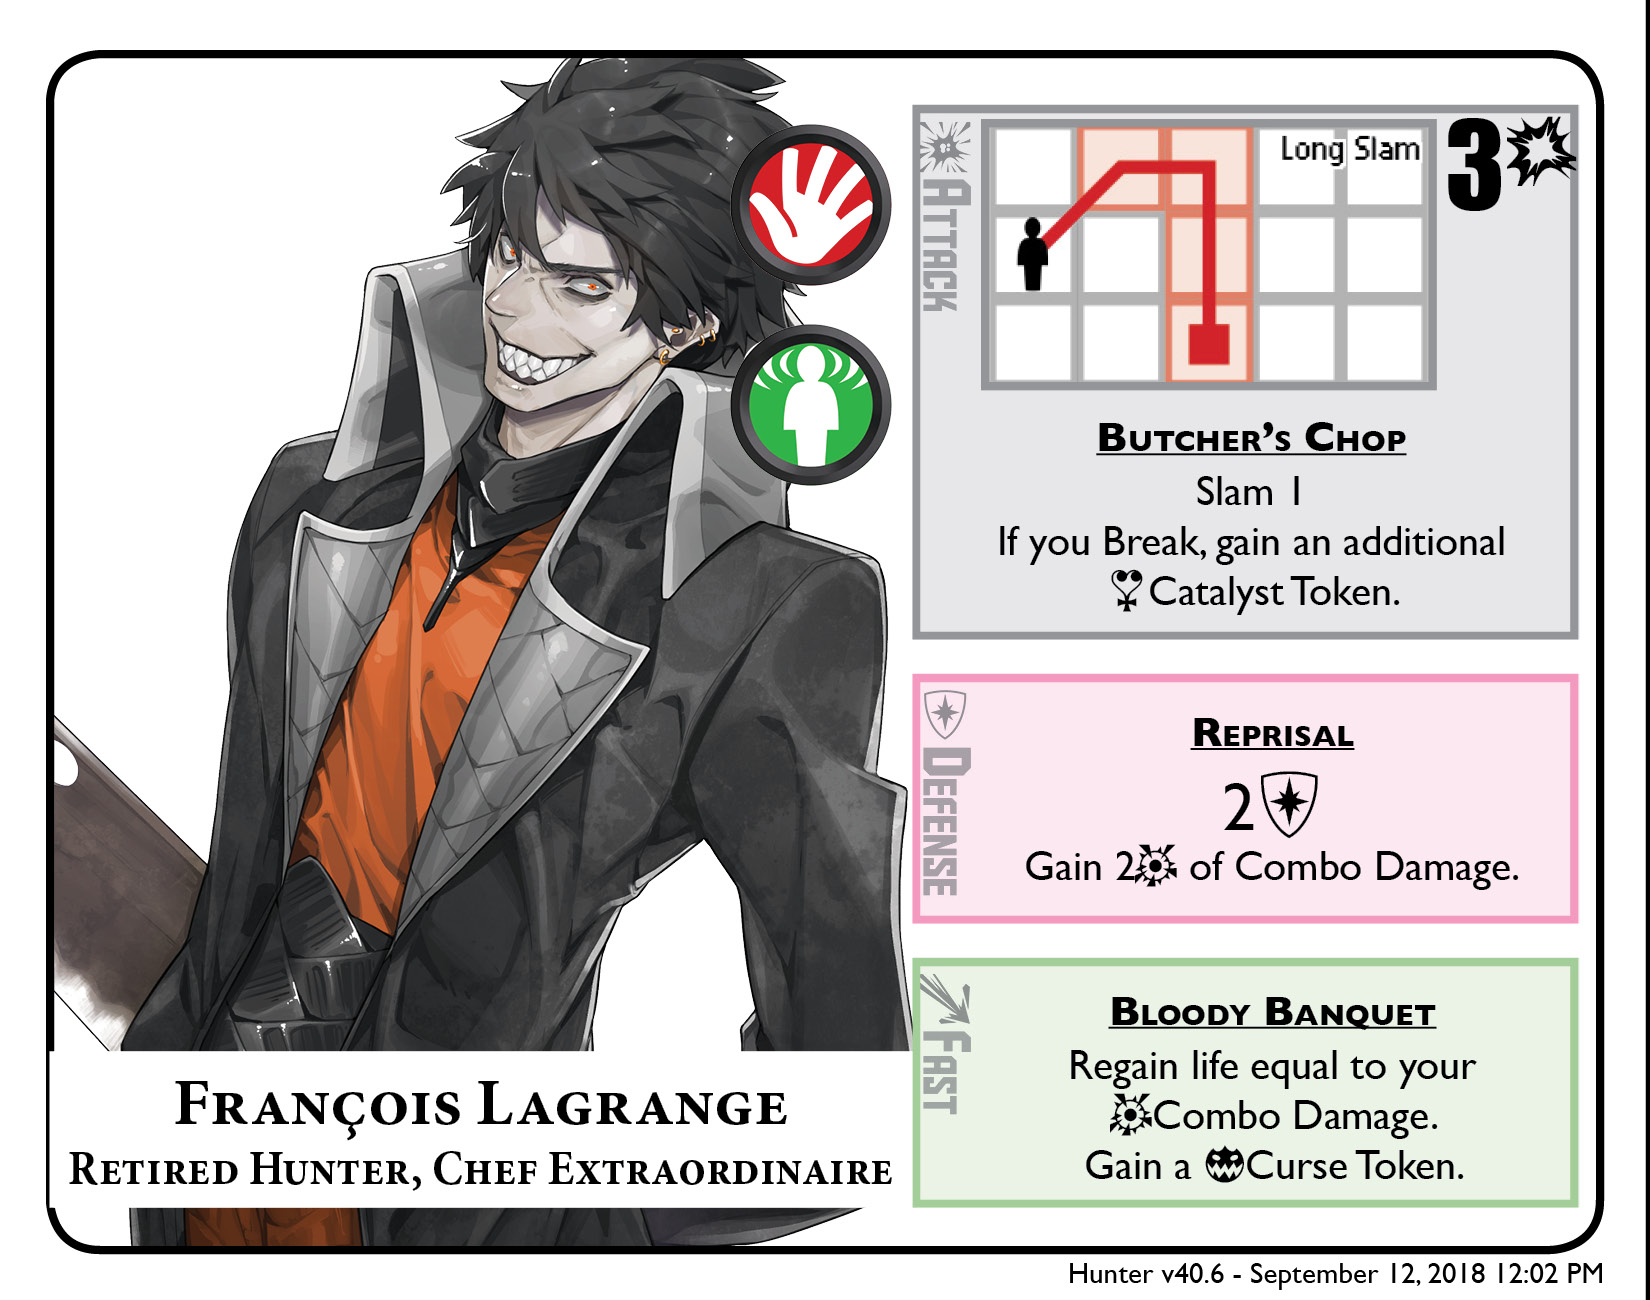 Associates can join you during battle, and provide new skills thematic to their jobs in Sanctuary.